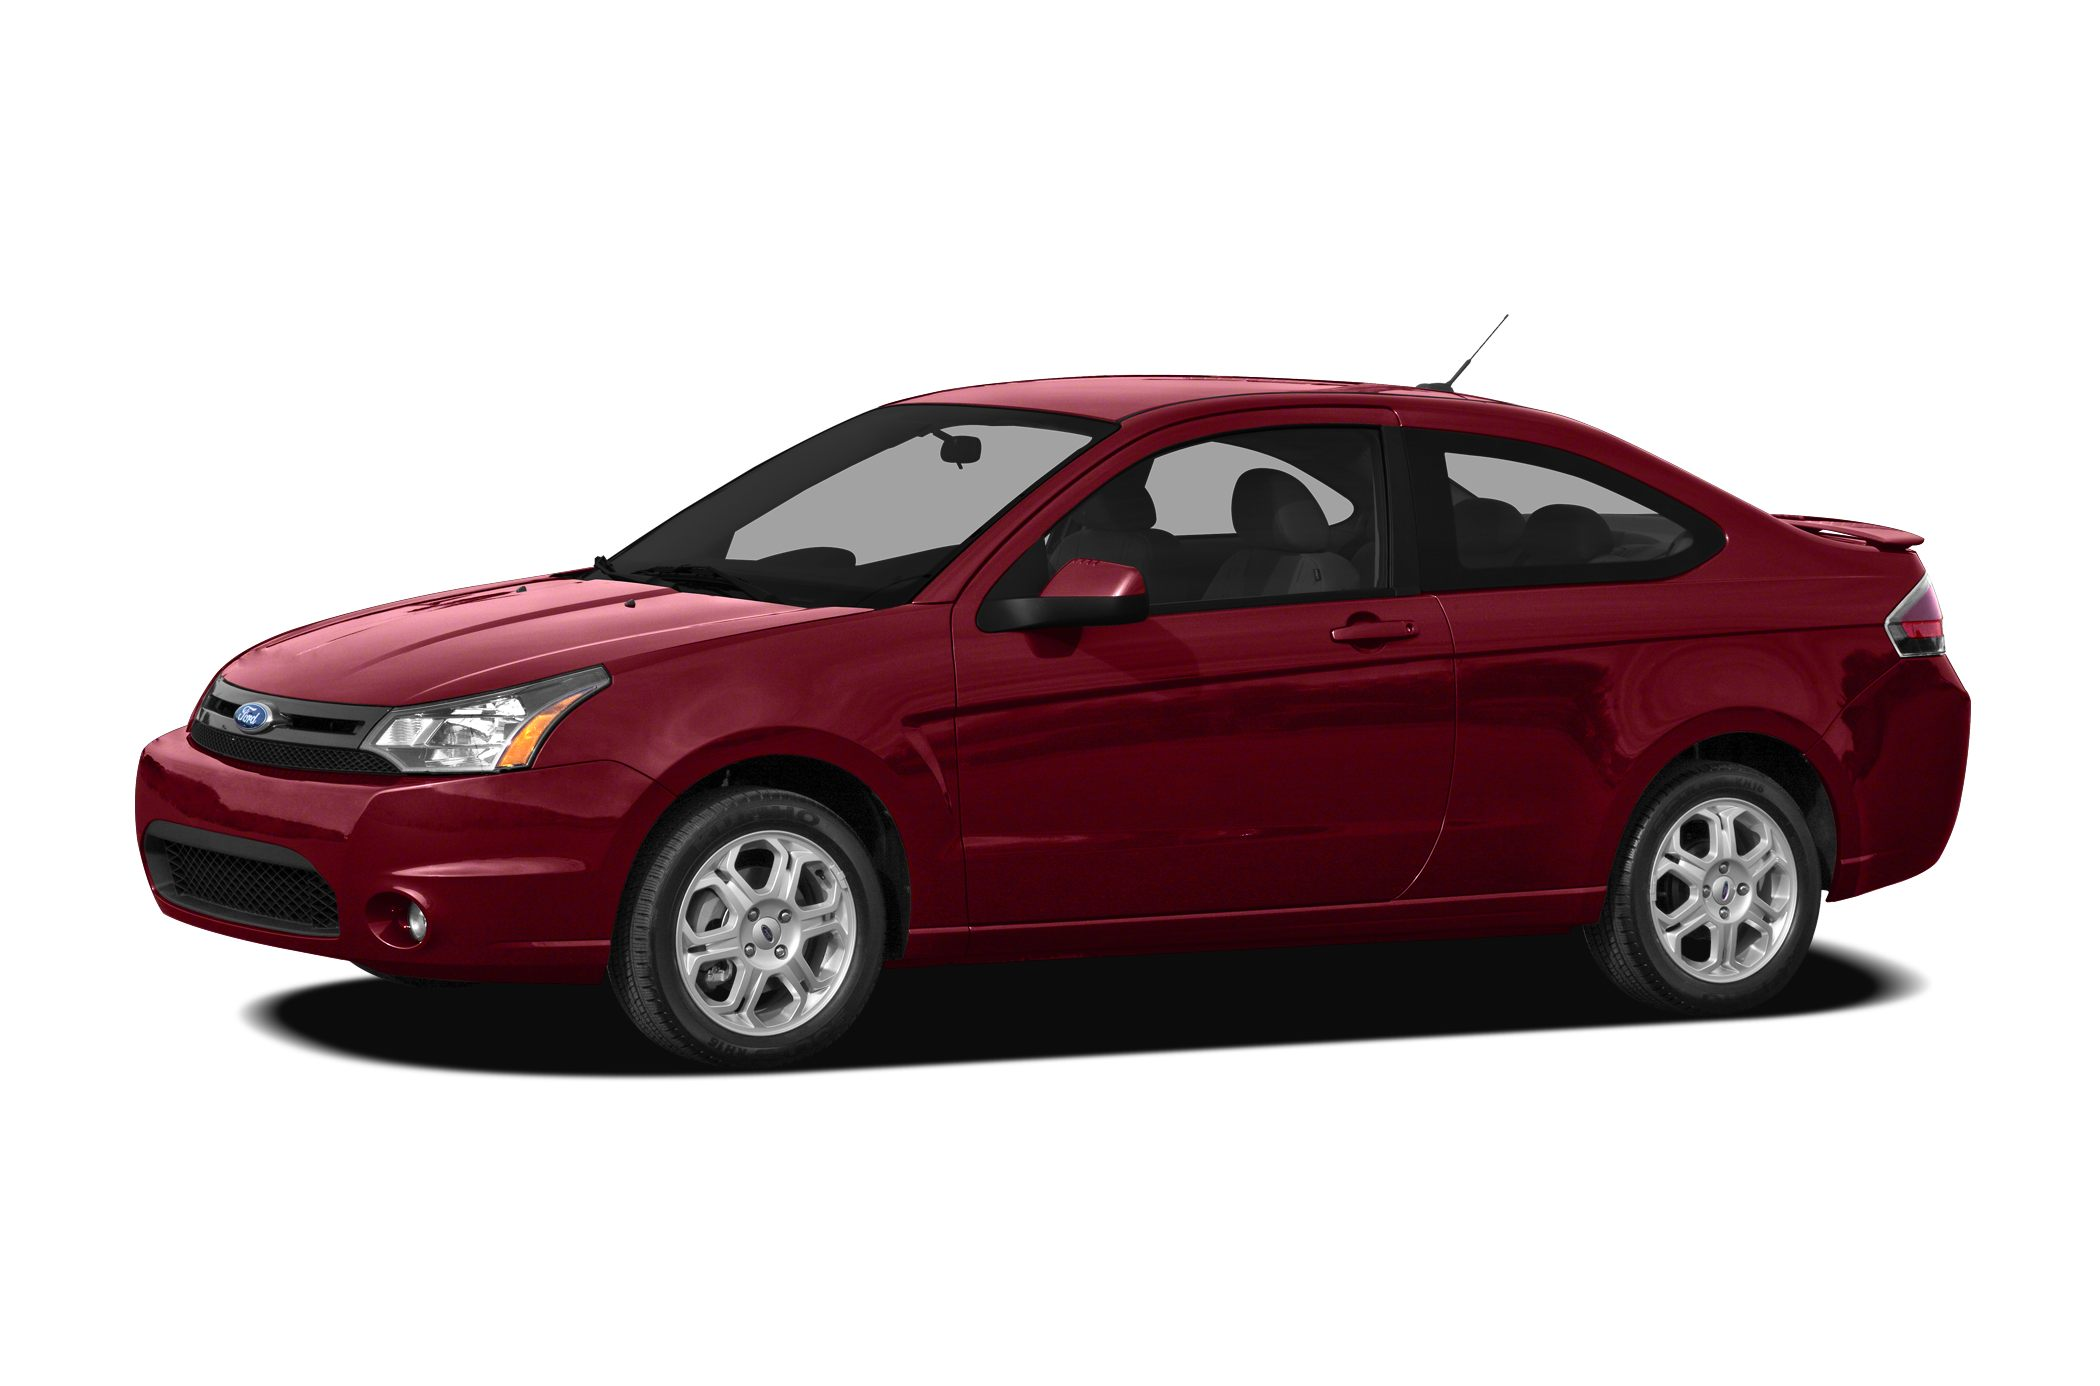 2010 Ford Focus SE This 2010 Ford Focus SE might be just the coupe for you It comes with a 2 lite